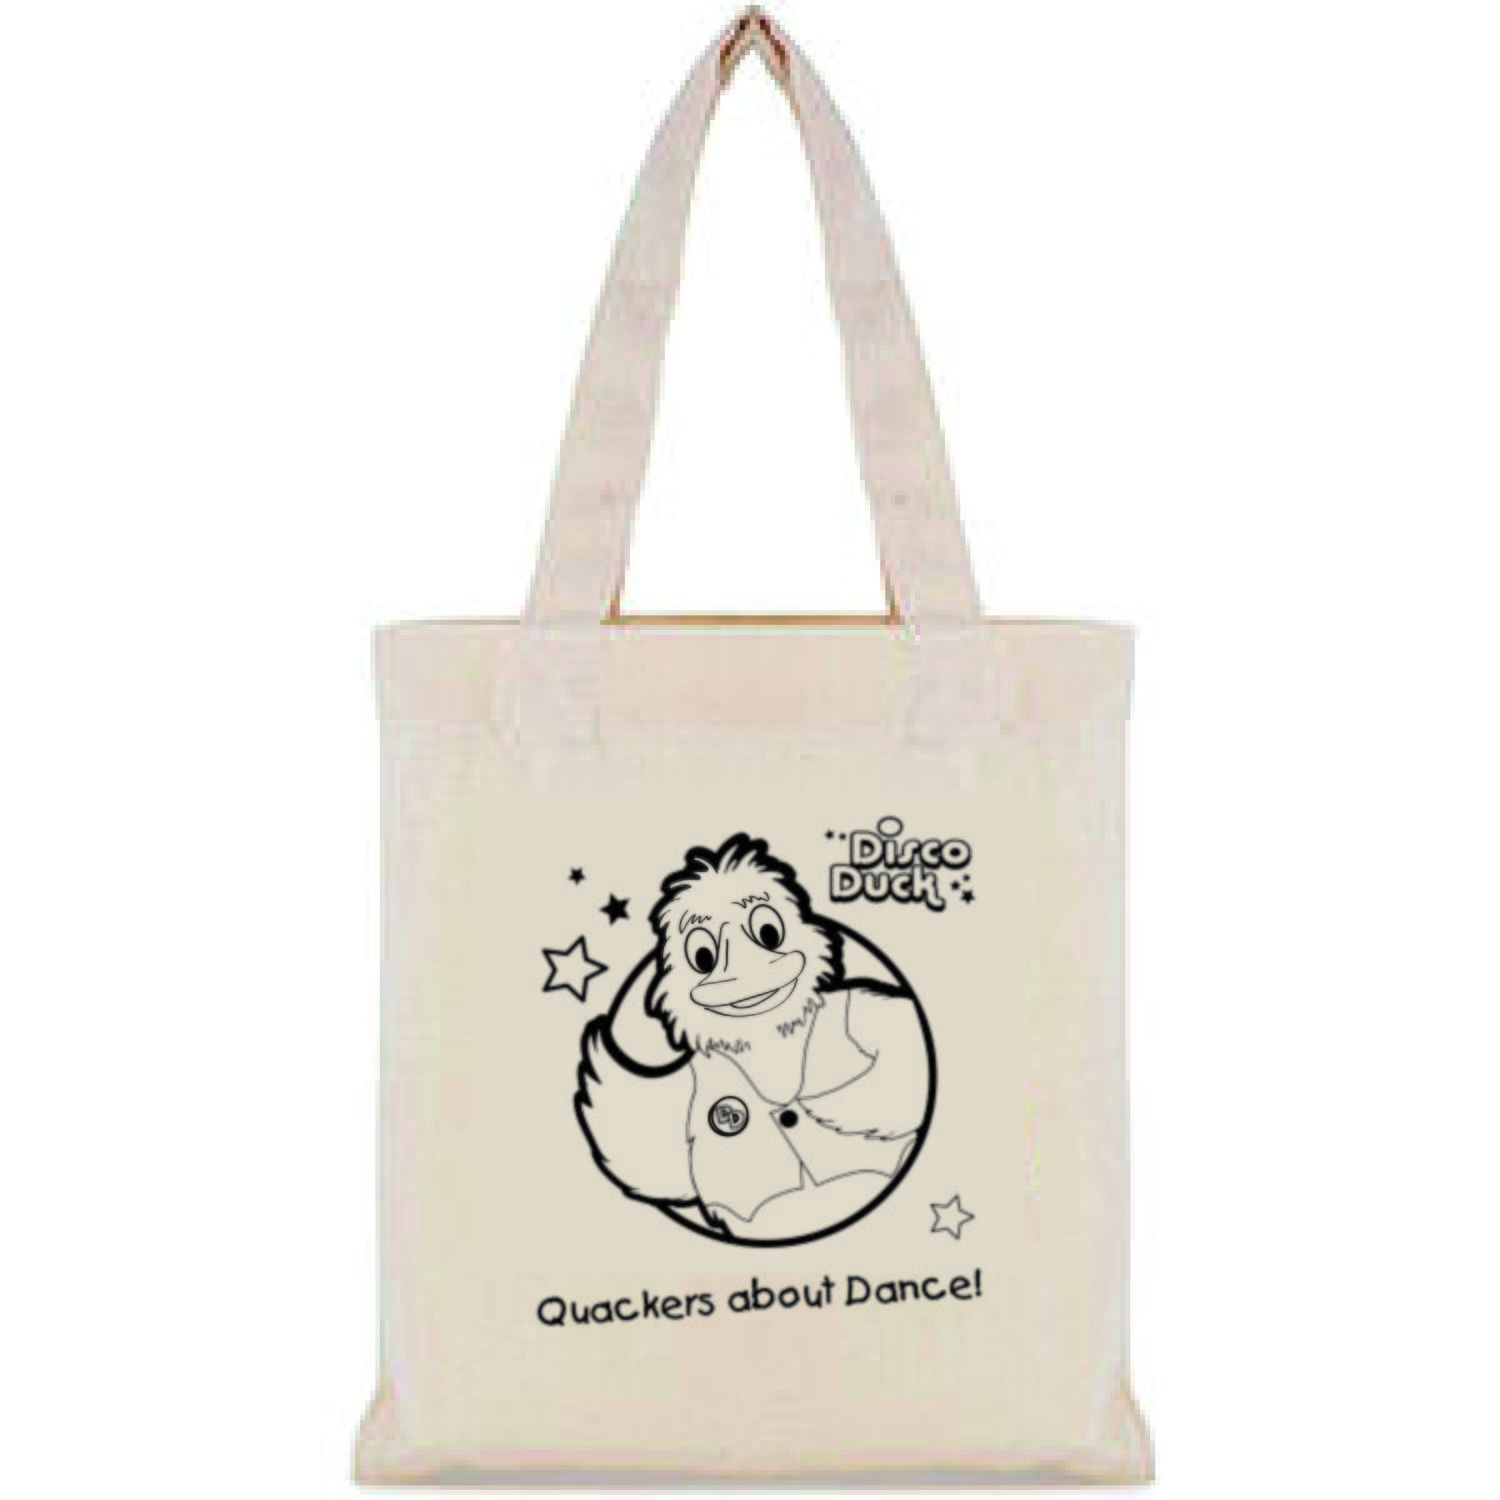 Disco Duck small shopping bag.